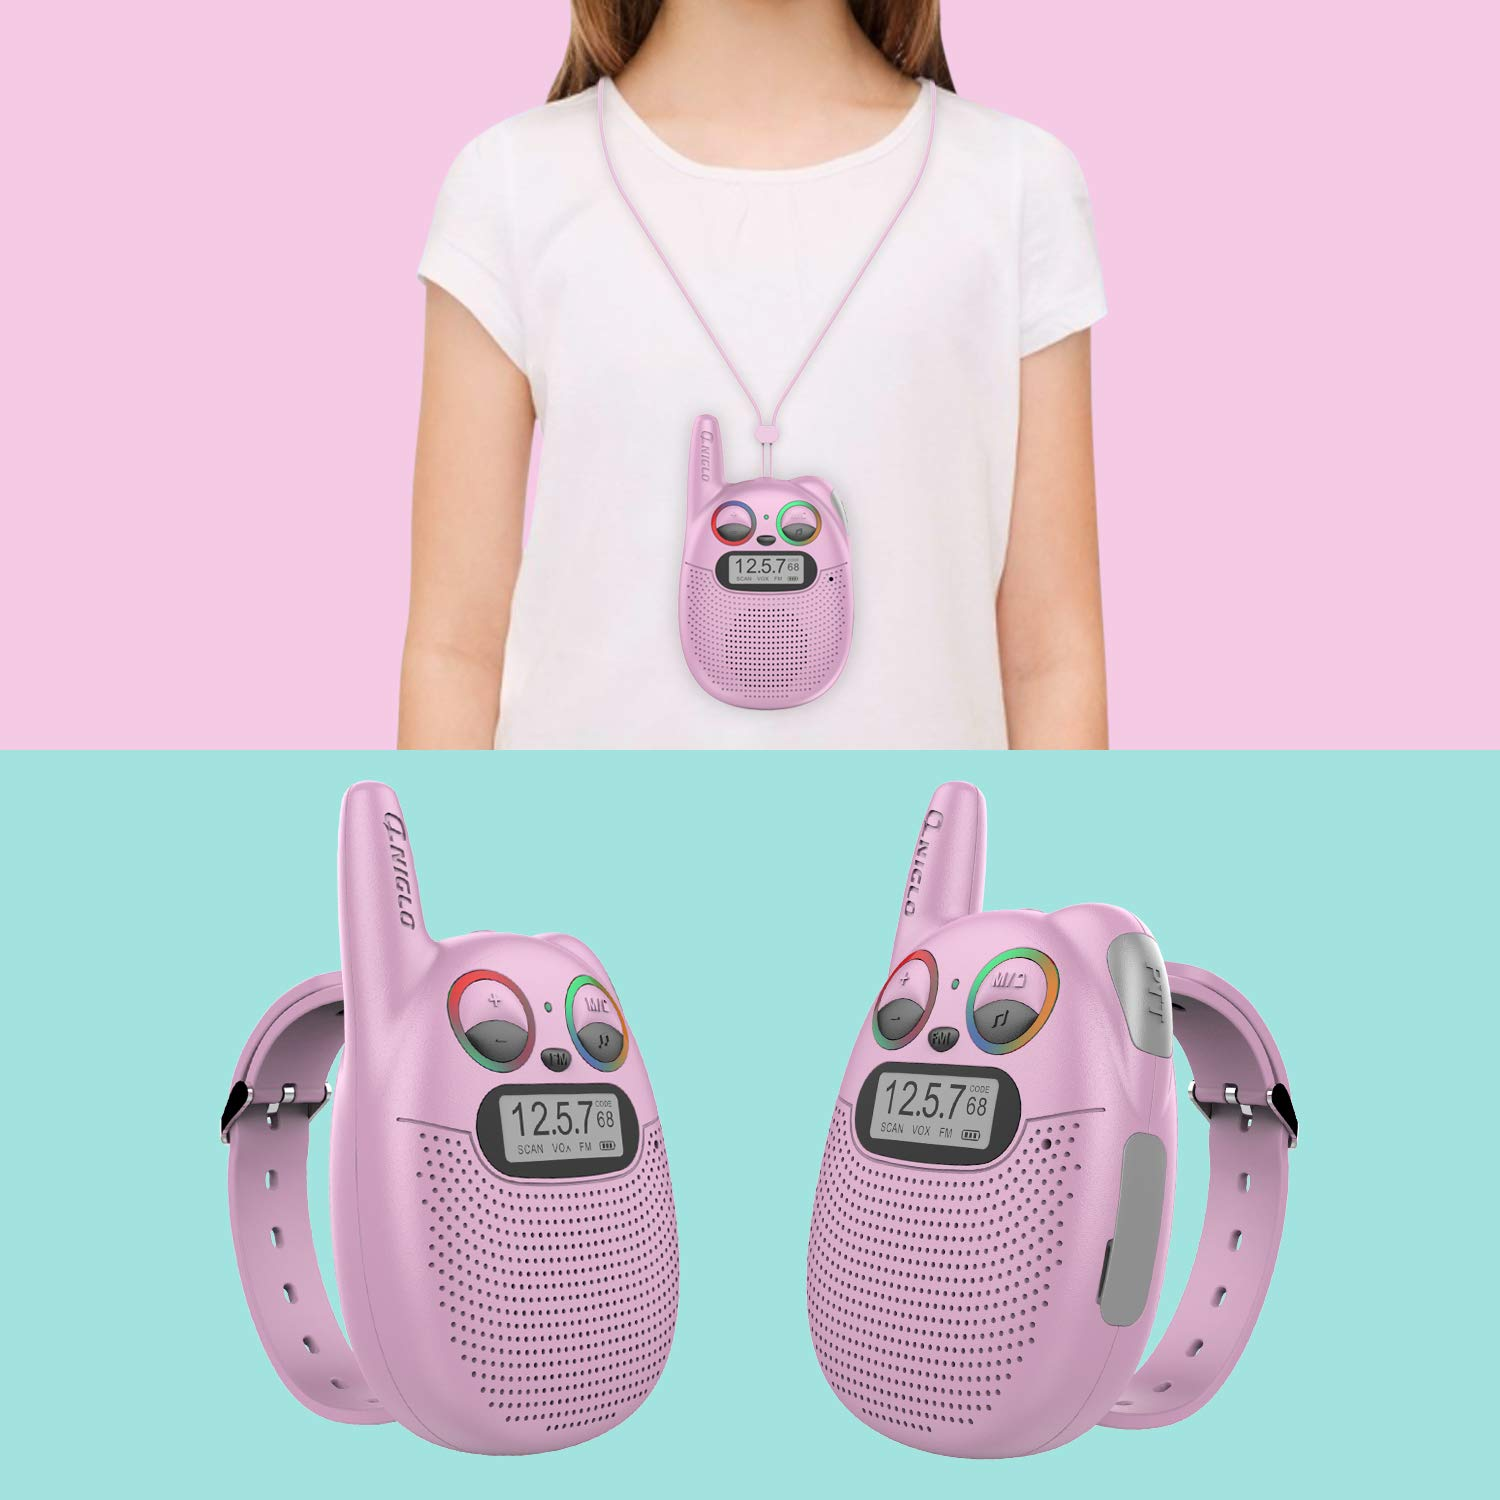 Qniglo FRS Walkie Talkies with FM, Wearable & Rechargeable Walkie Talkies for Kids, up to 2 Miles Kids Walkie Talkies for Bicycle, Hiking, Camping, Running (2 Packs, Pink) by Qniglo (Image #2)